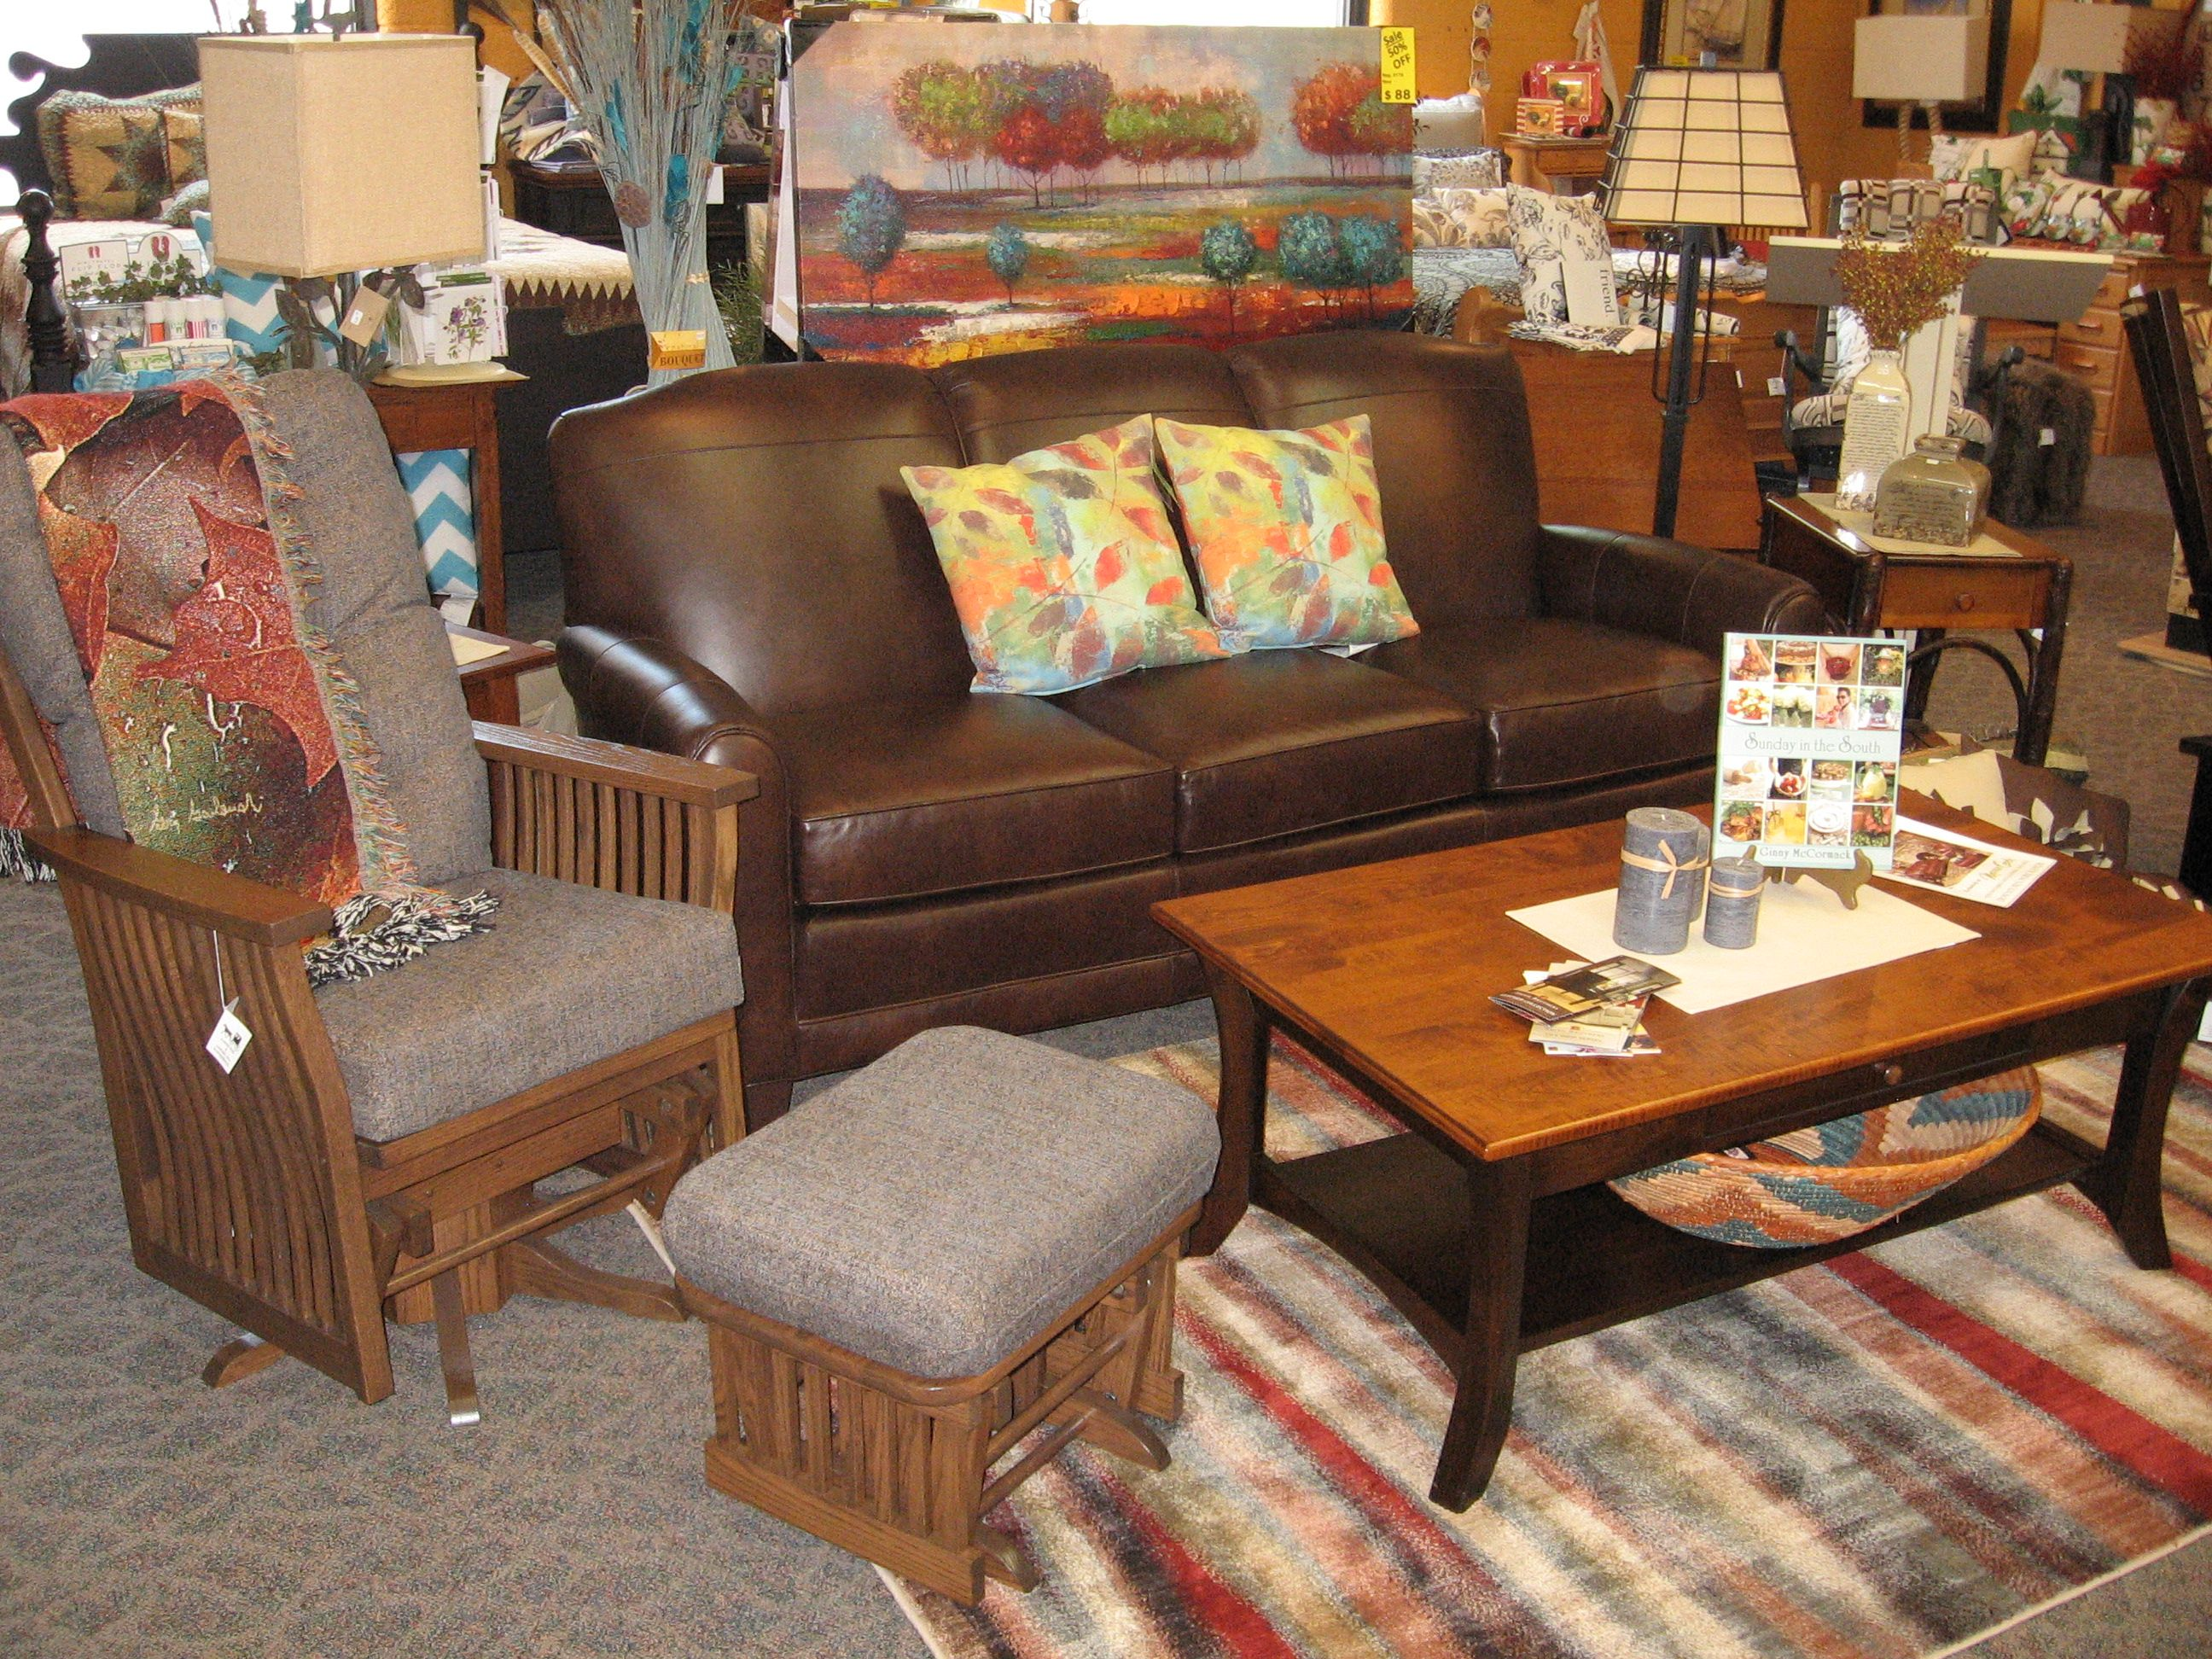 Brown Leather Couch By Smith Brothers And Amish Made Chair. Rustic Table In  The Middle